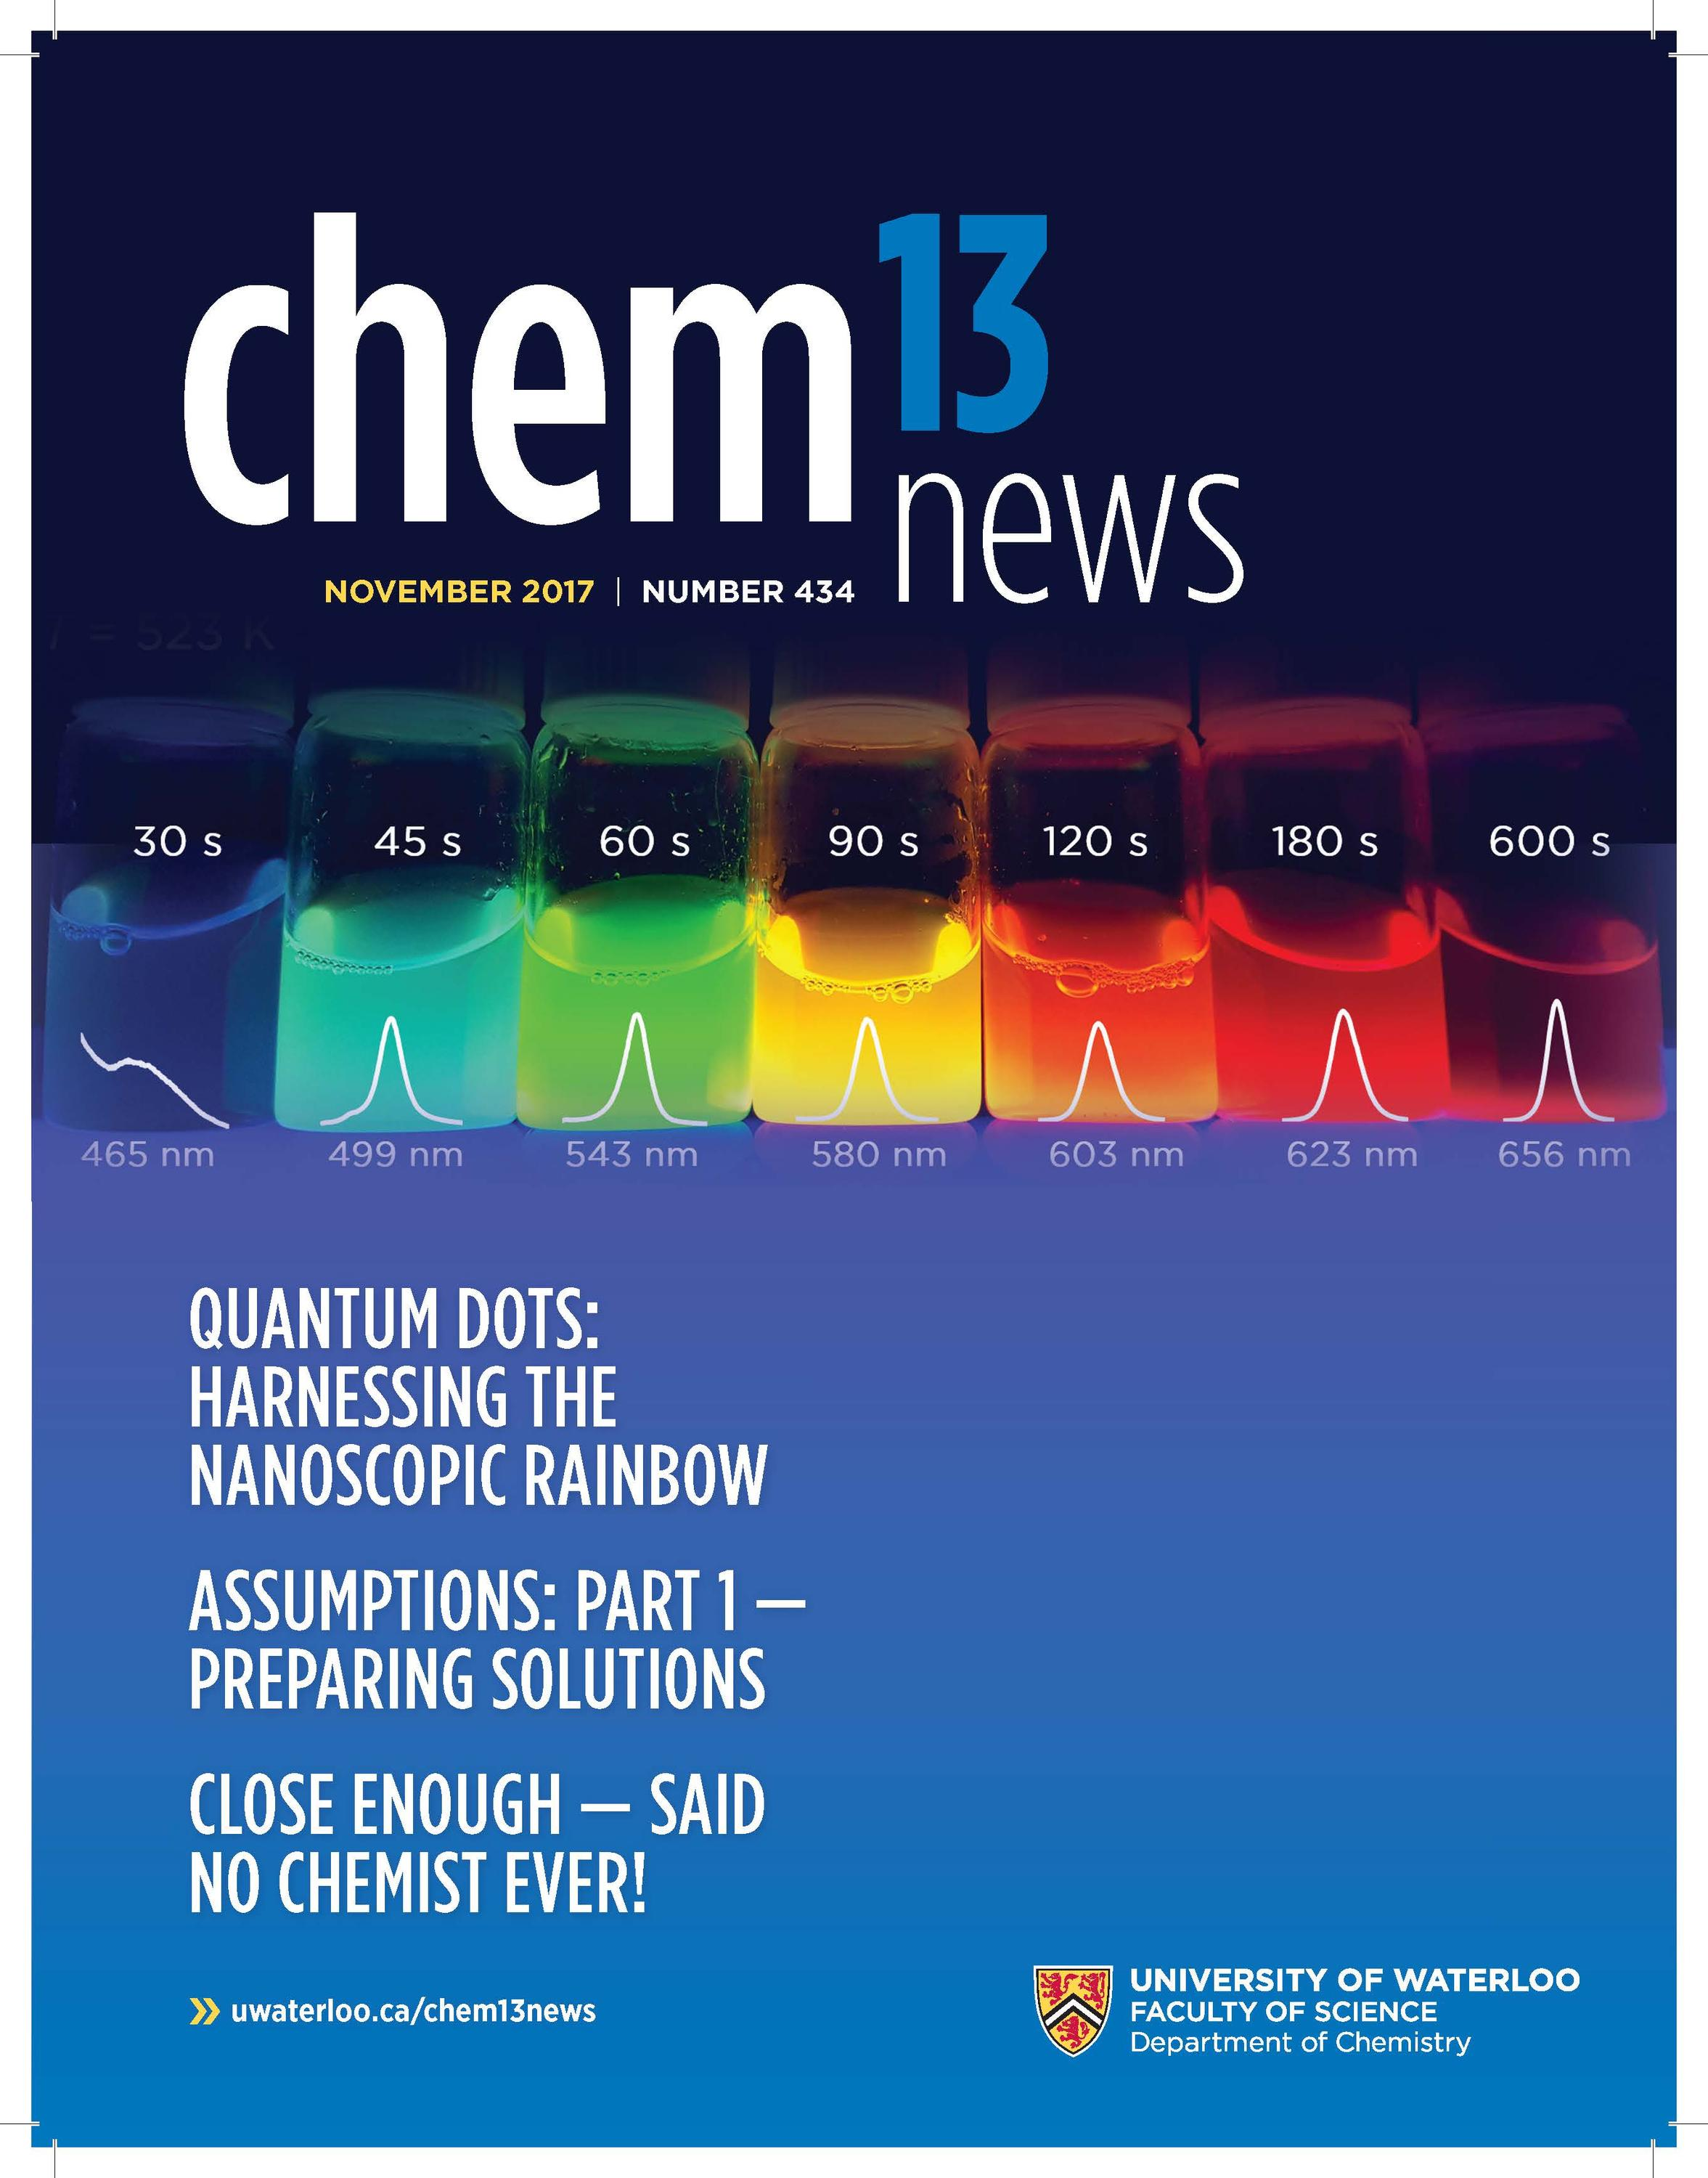 Chem13 News cover featuring the quantum nanodots experiment.